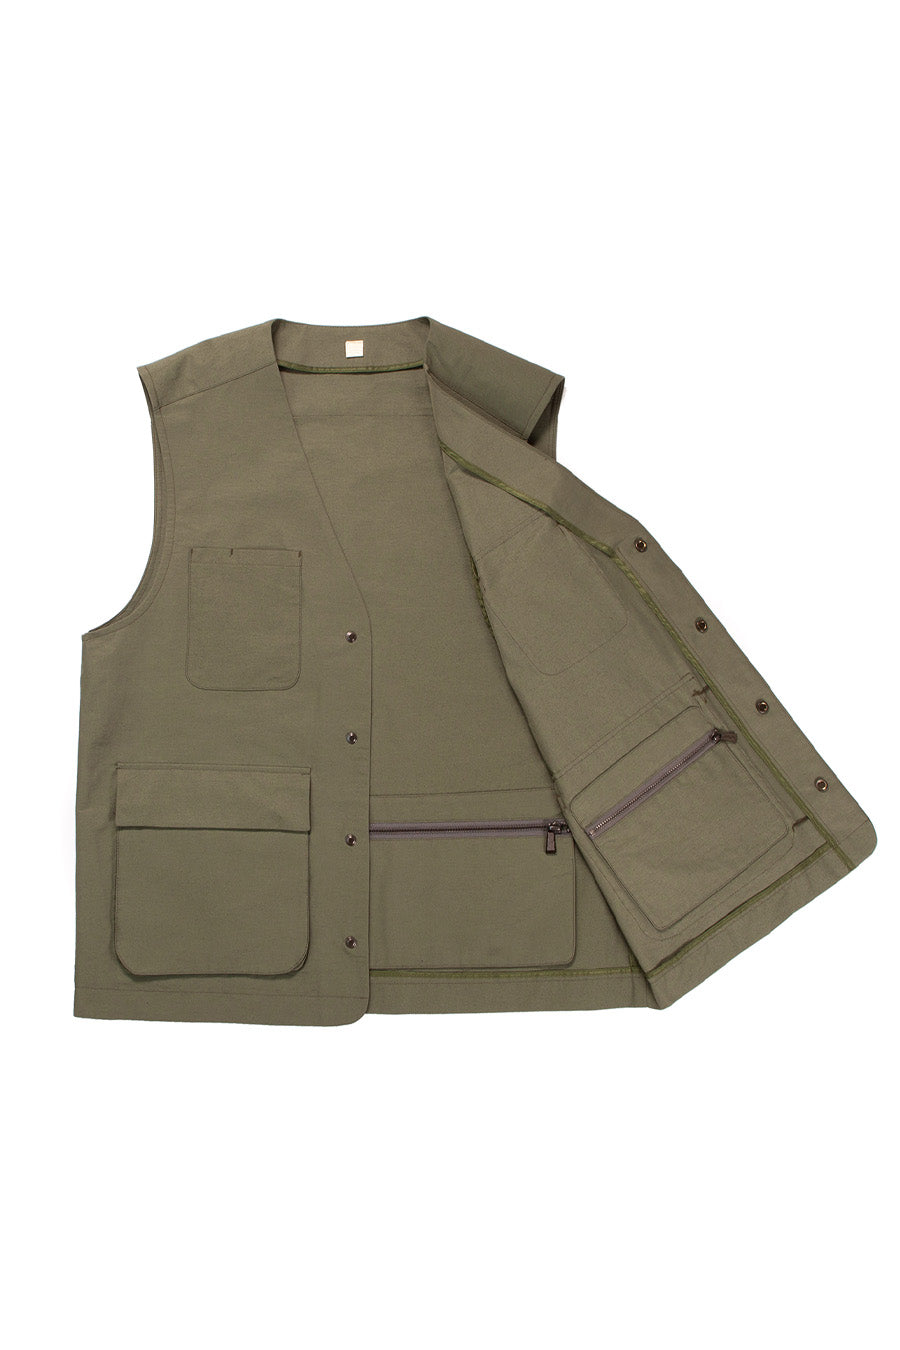 Army Green Technical Utility Vest